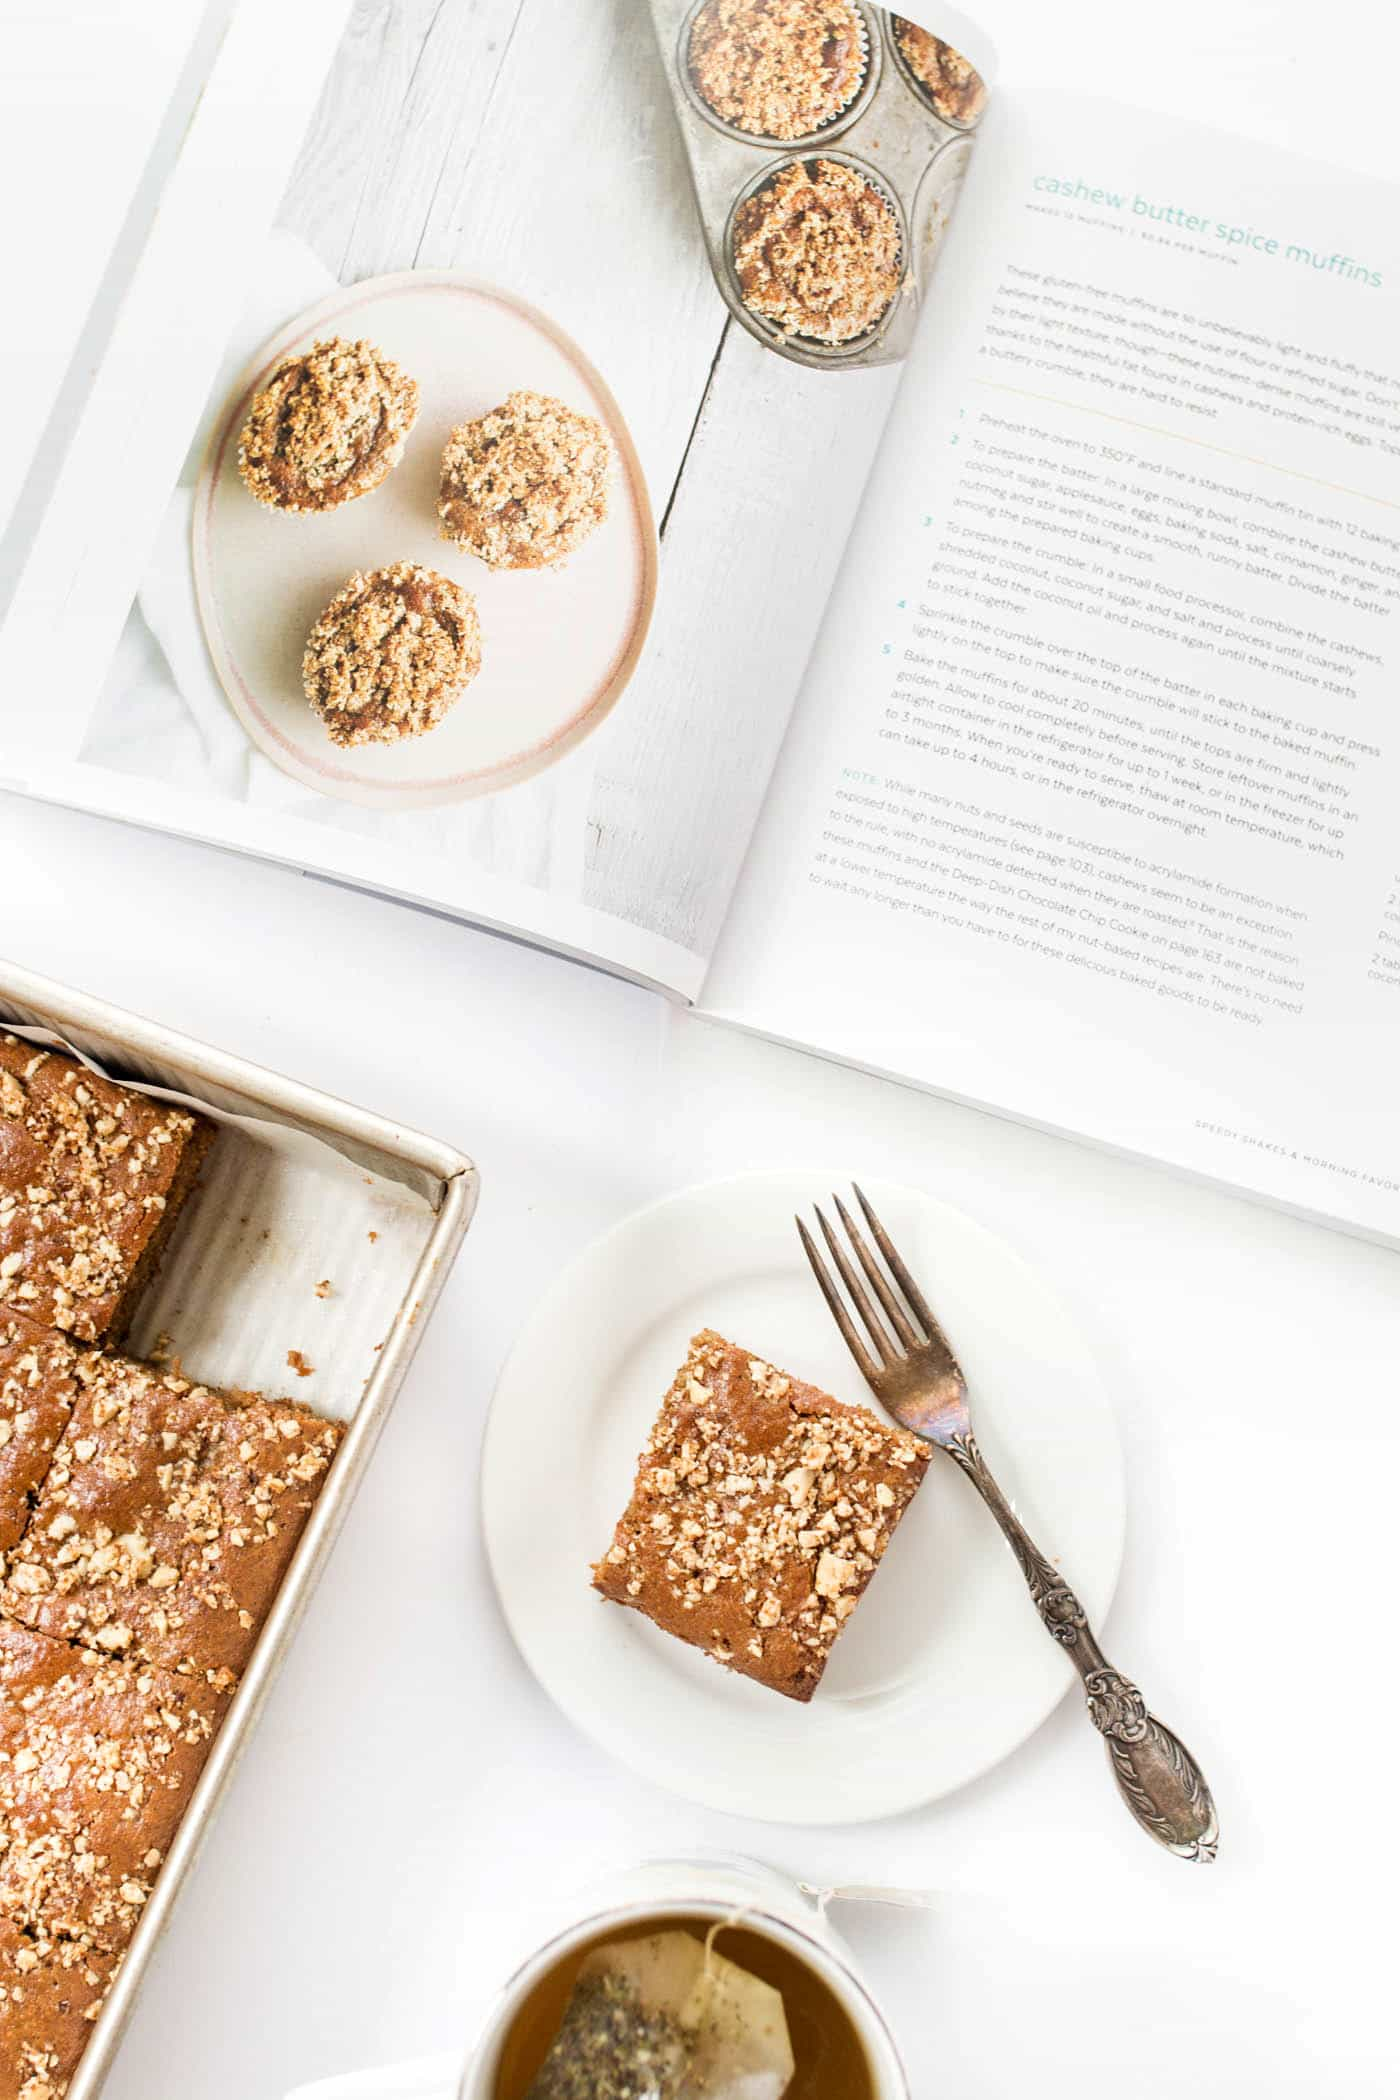 My newest dessert obsession >>> these cashew butter crumb bars are LEGIT. Super light and fluffy, sweetened without any refined sugar, no oils and NO FLOUR!